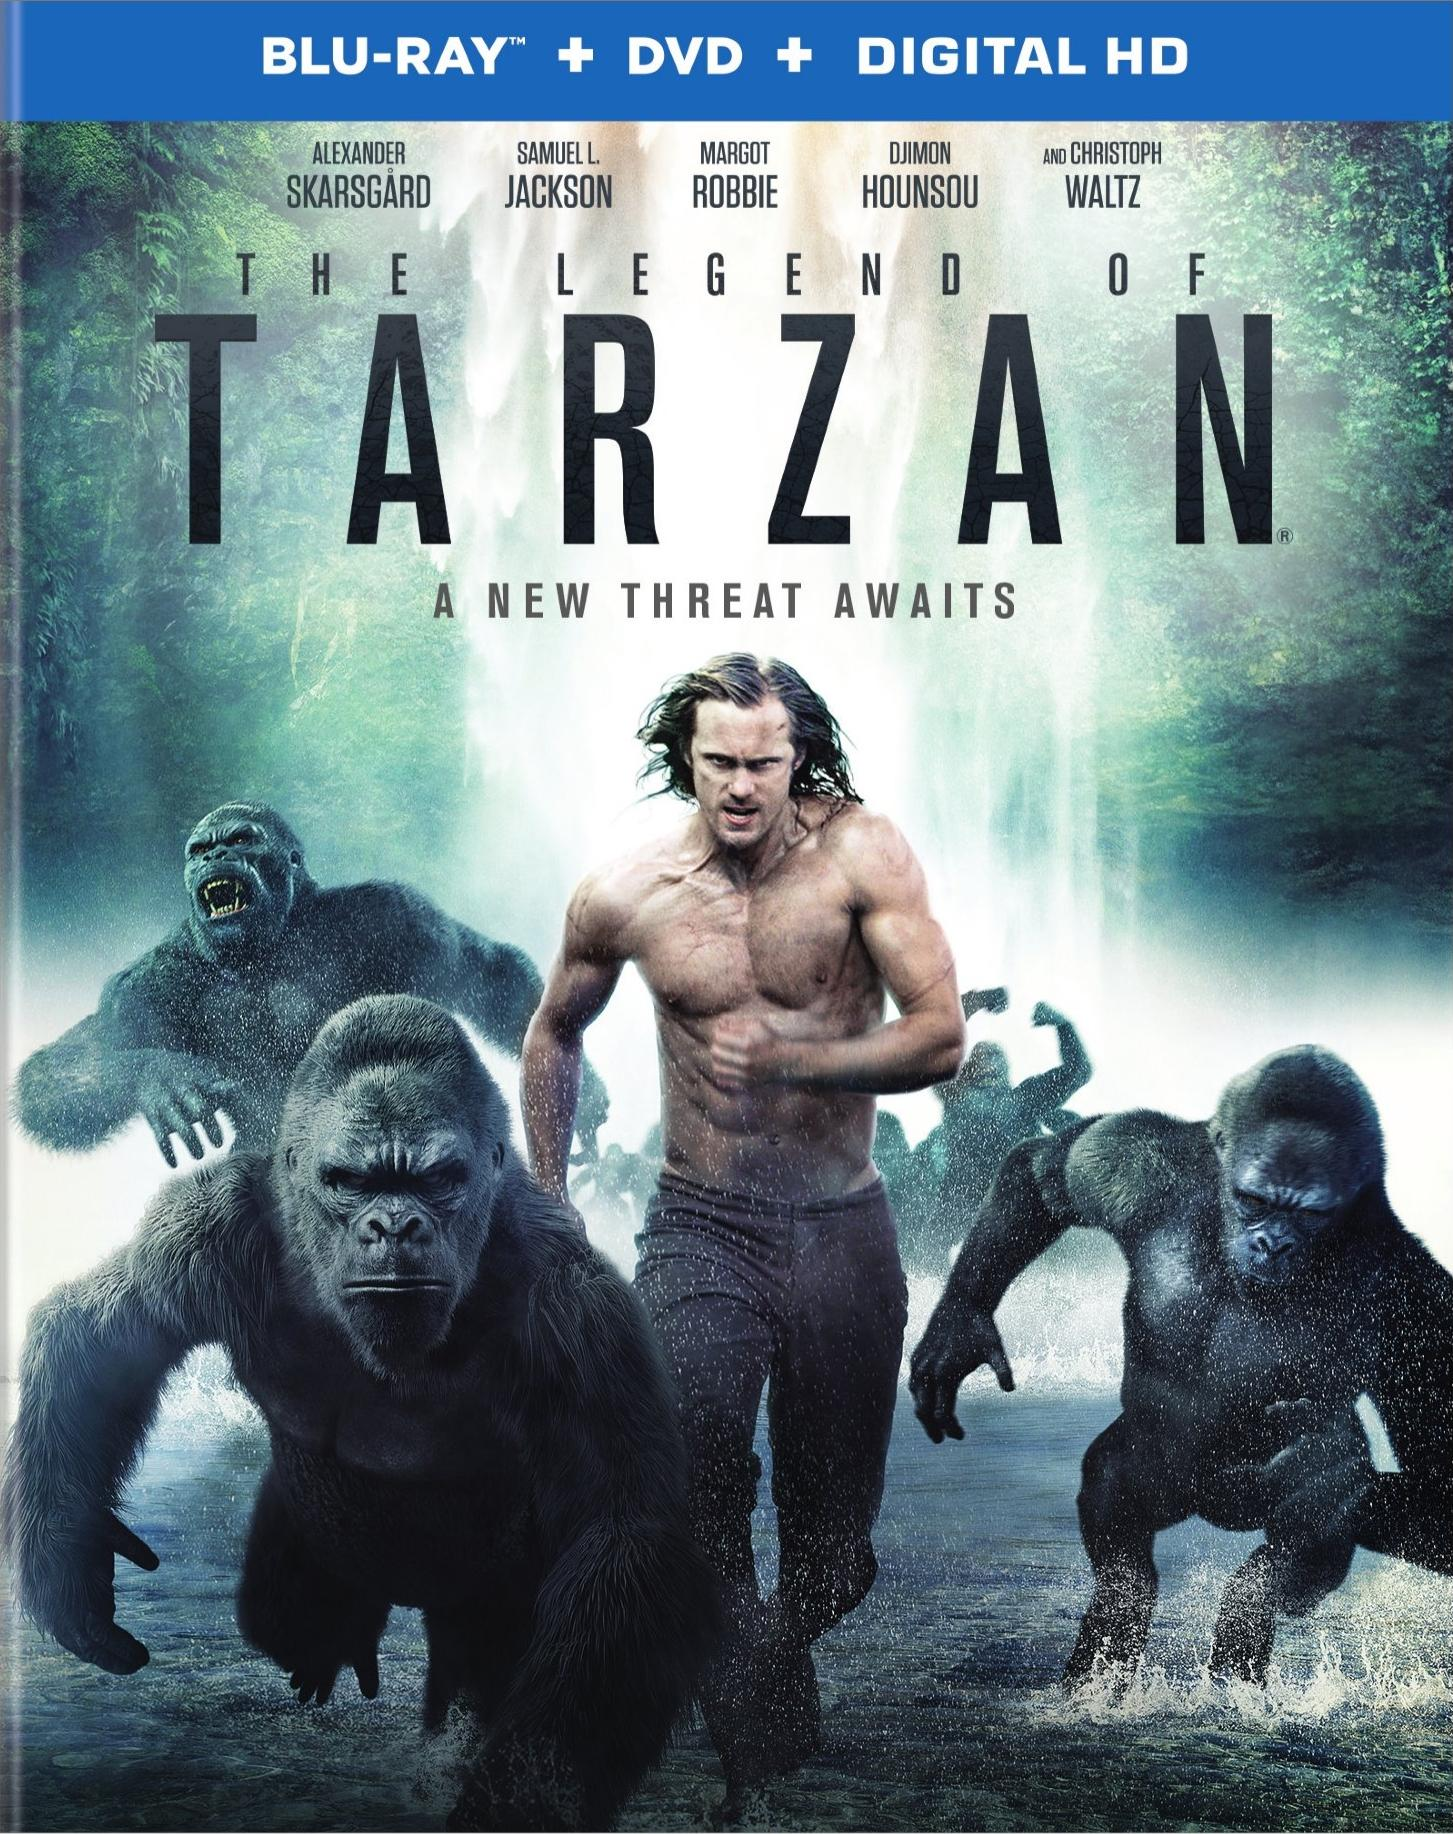 the-legend-of-tarzan-2016-2d-blu-ray-cover